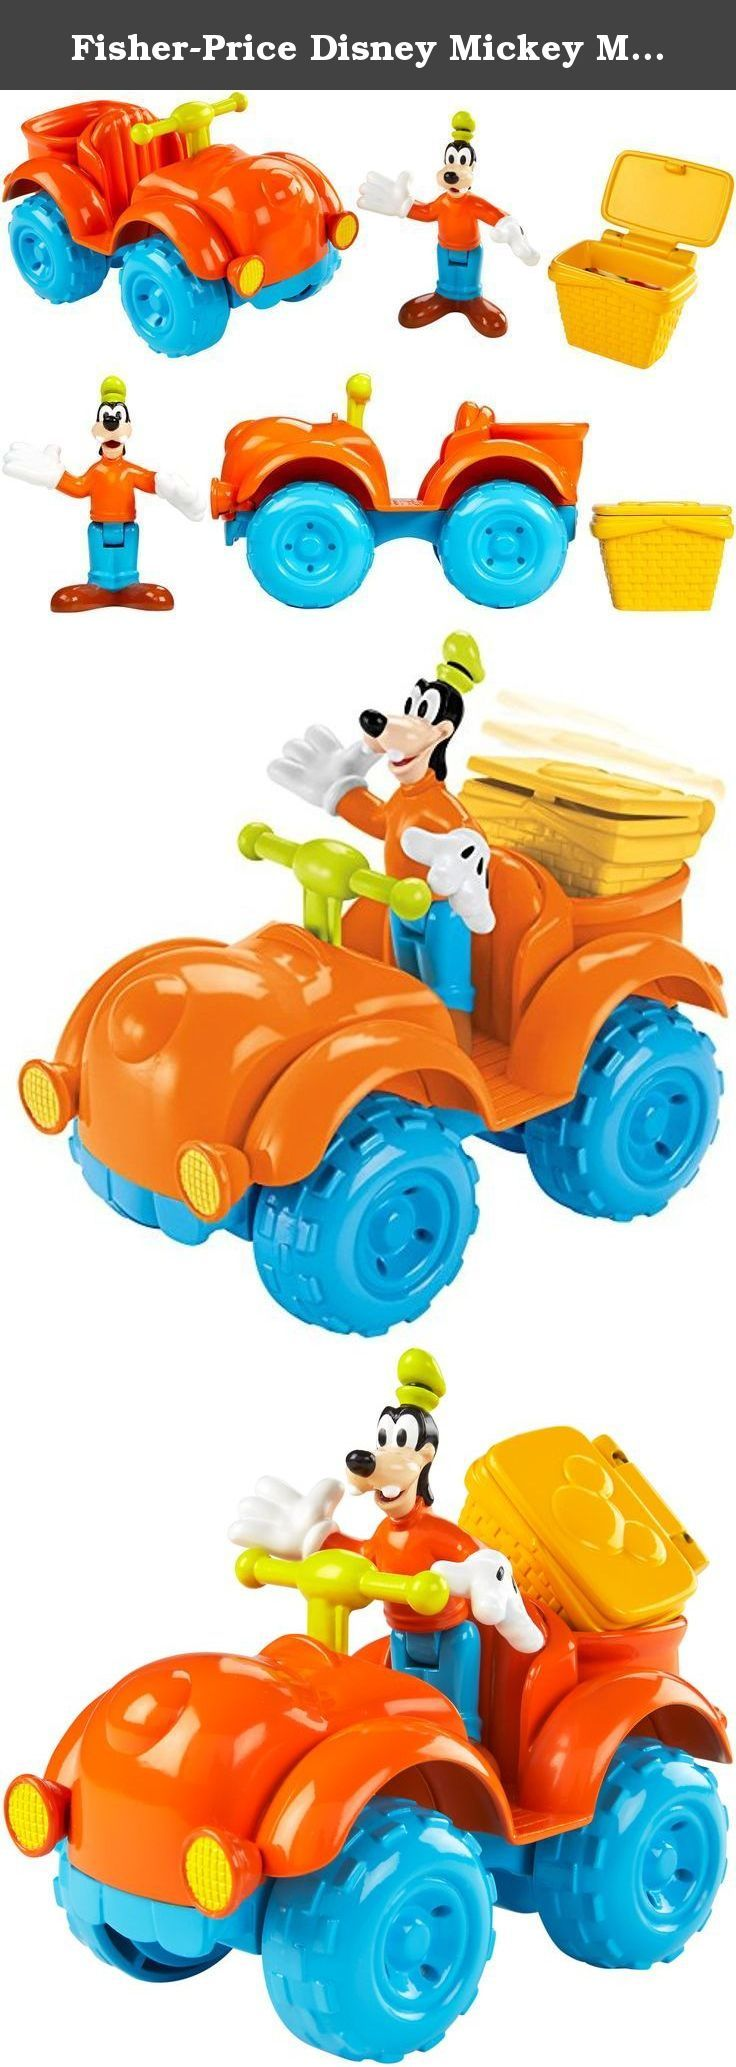 Fisher-Price Disney Mickey Mouse Clubhouse Goofy Outdoor Cruiser Playset. Goofy is delivering a picnic basket to the campground for a fun-filled picnic lunch! This 3-inch Goofy figure can ride his bumblin' bouncin' ATV that you can push along. Goofy sits on his chunky-wheeled all-terrain vehicle and his picnic basket fits in the rear storage area. Roll the vehicle along and the picnic basket bounces up and down with a silly action! This fun vehicle figure set includes three play pieces in...